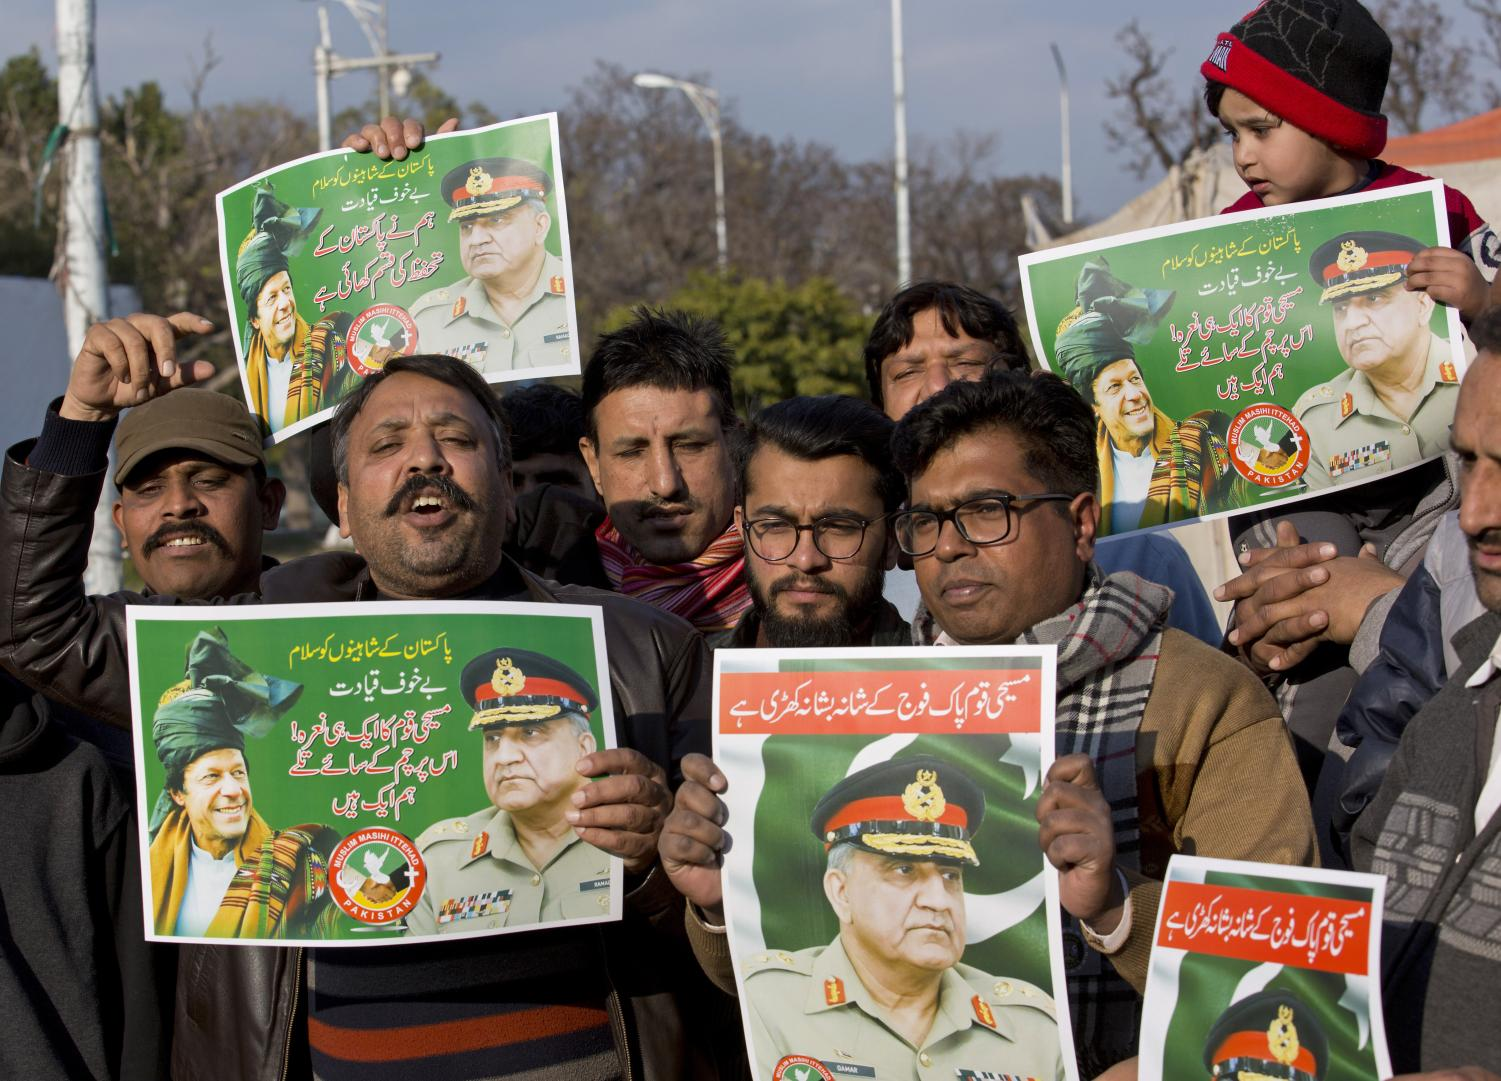 People hold posters of Pakistani army chief Gen. Qamar Javed Bajwa and Prime Minister Imran Khan during an anti-India rally, in Islamabad, Pakistan, Wednesday, Feb. 27, 2019.